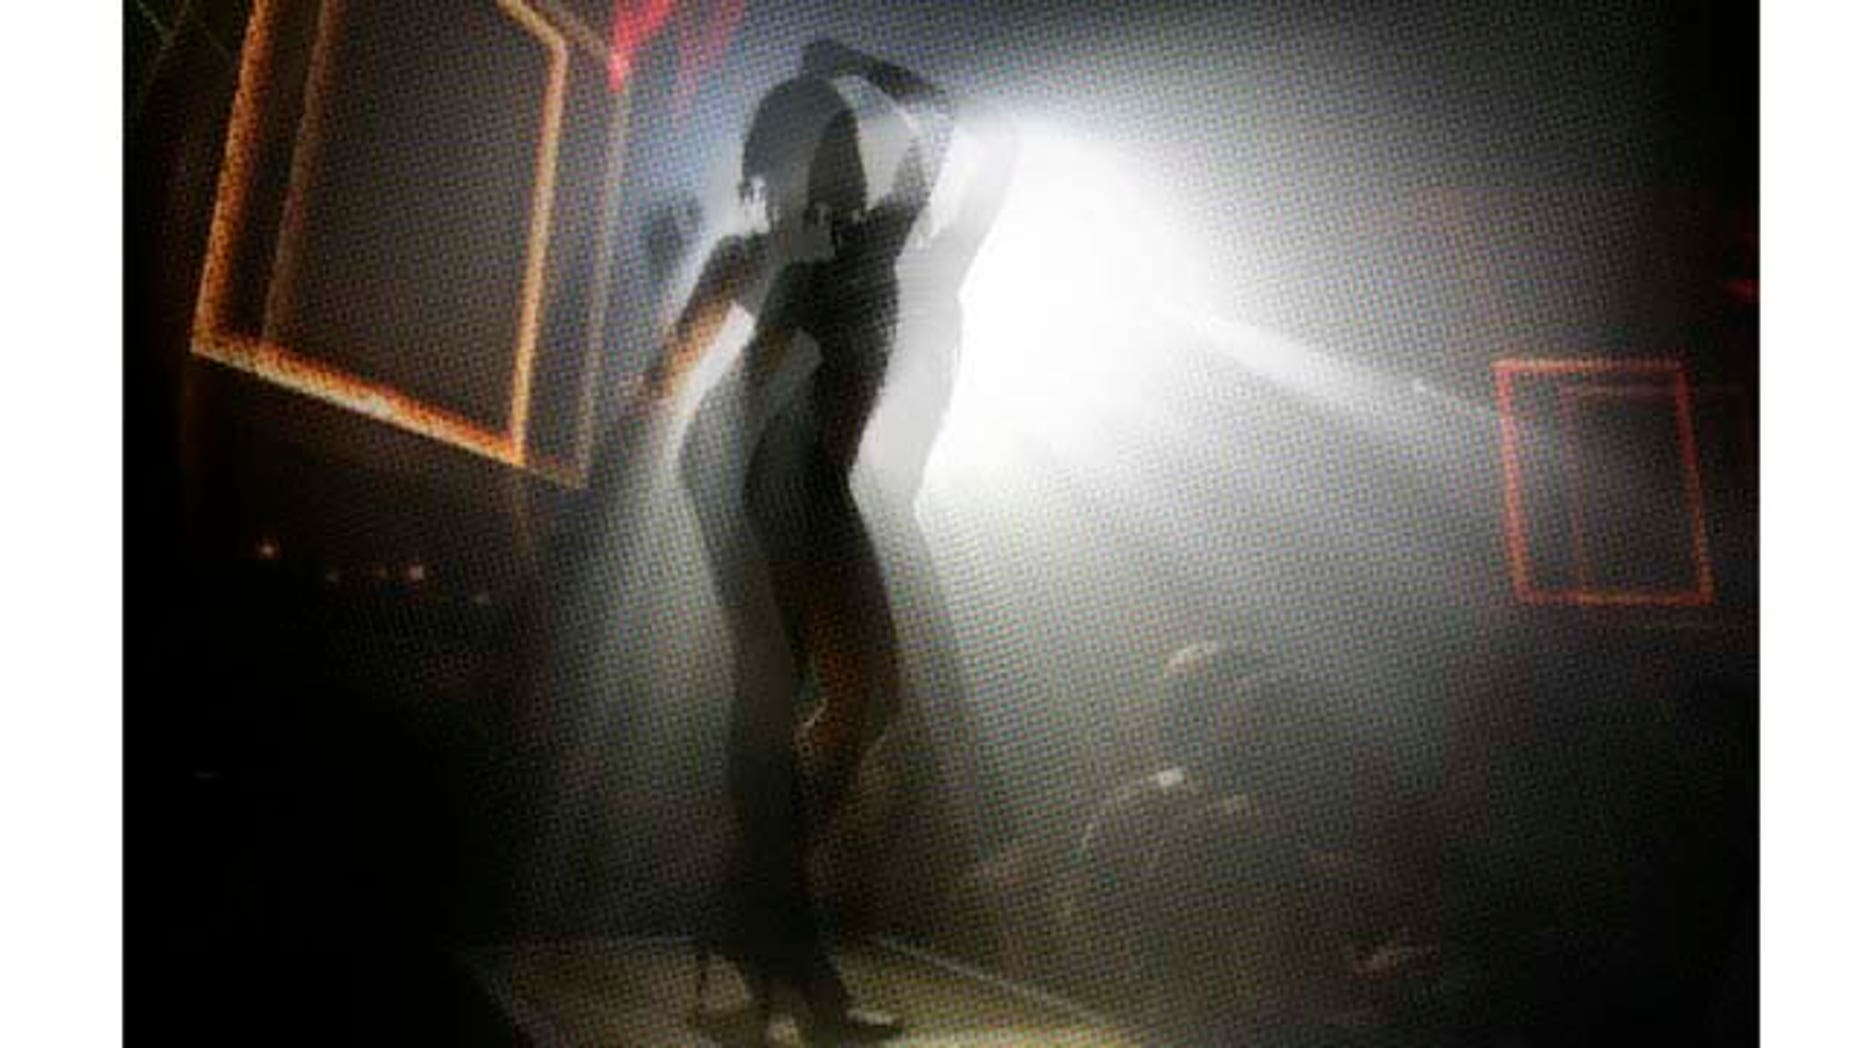 ** FOR IMMEDIATE RELEASE **A girl dances on a platform at the Mansion nightclub in Miami Beach, Fla., Nov. 10, 2006. (AP Photo/Lynne Sladky)